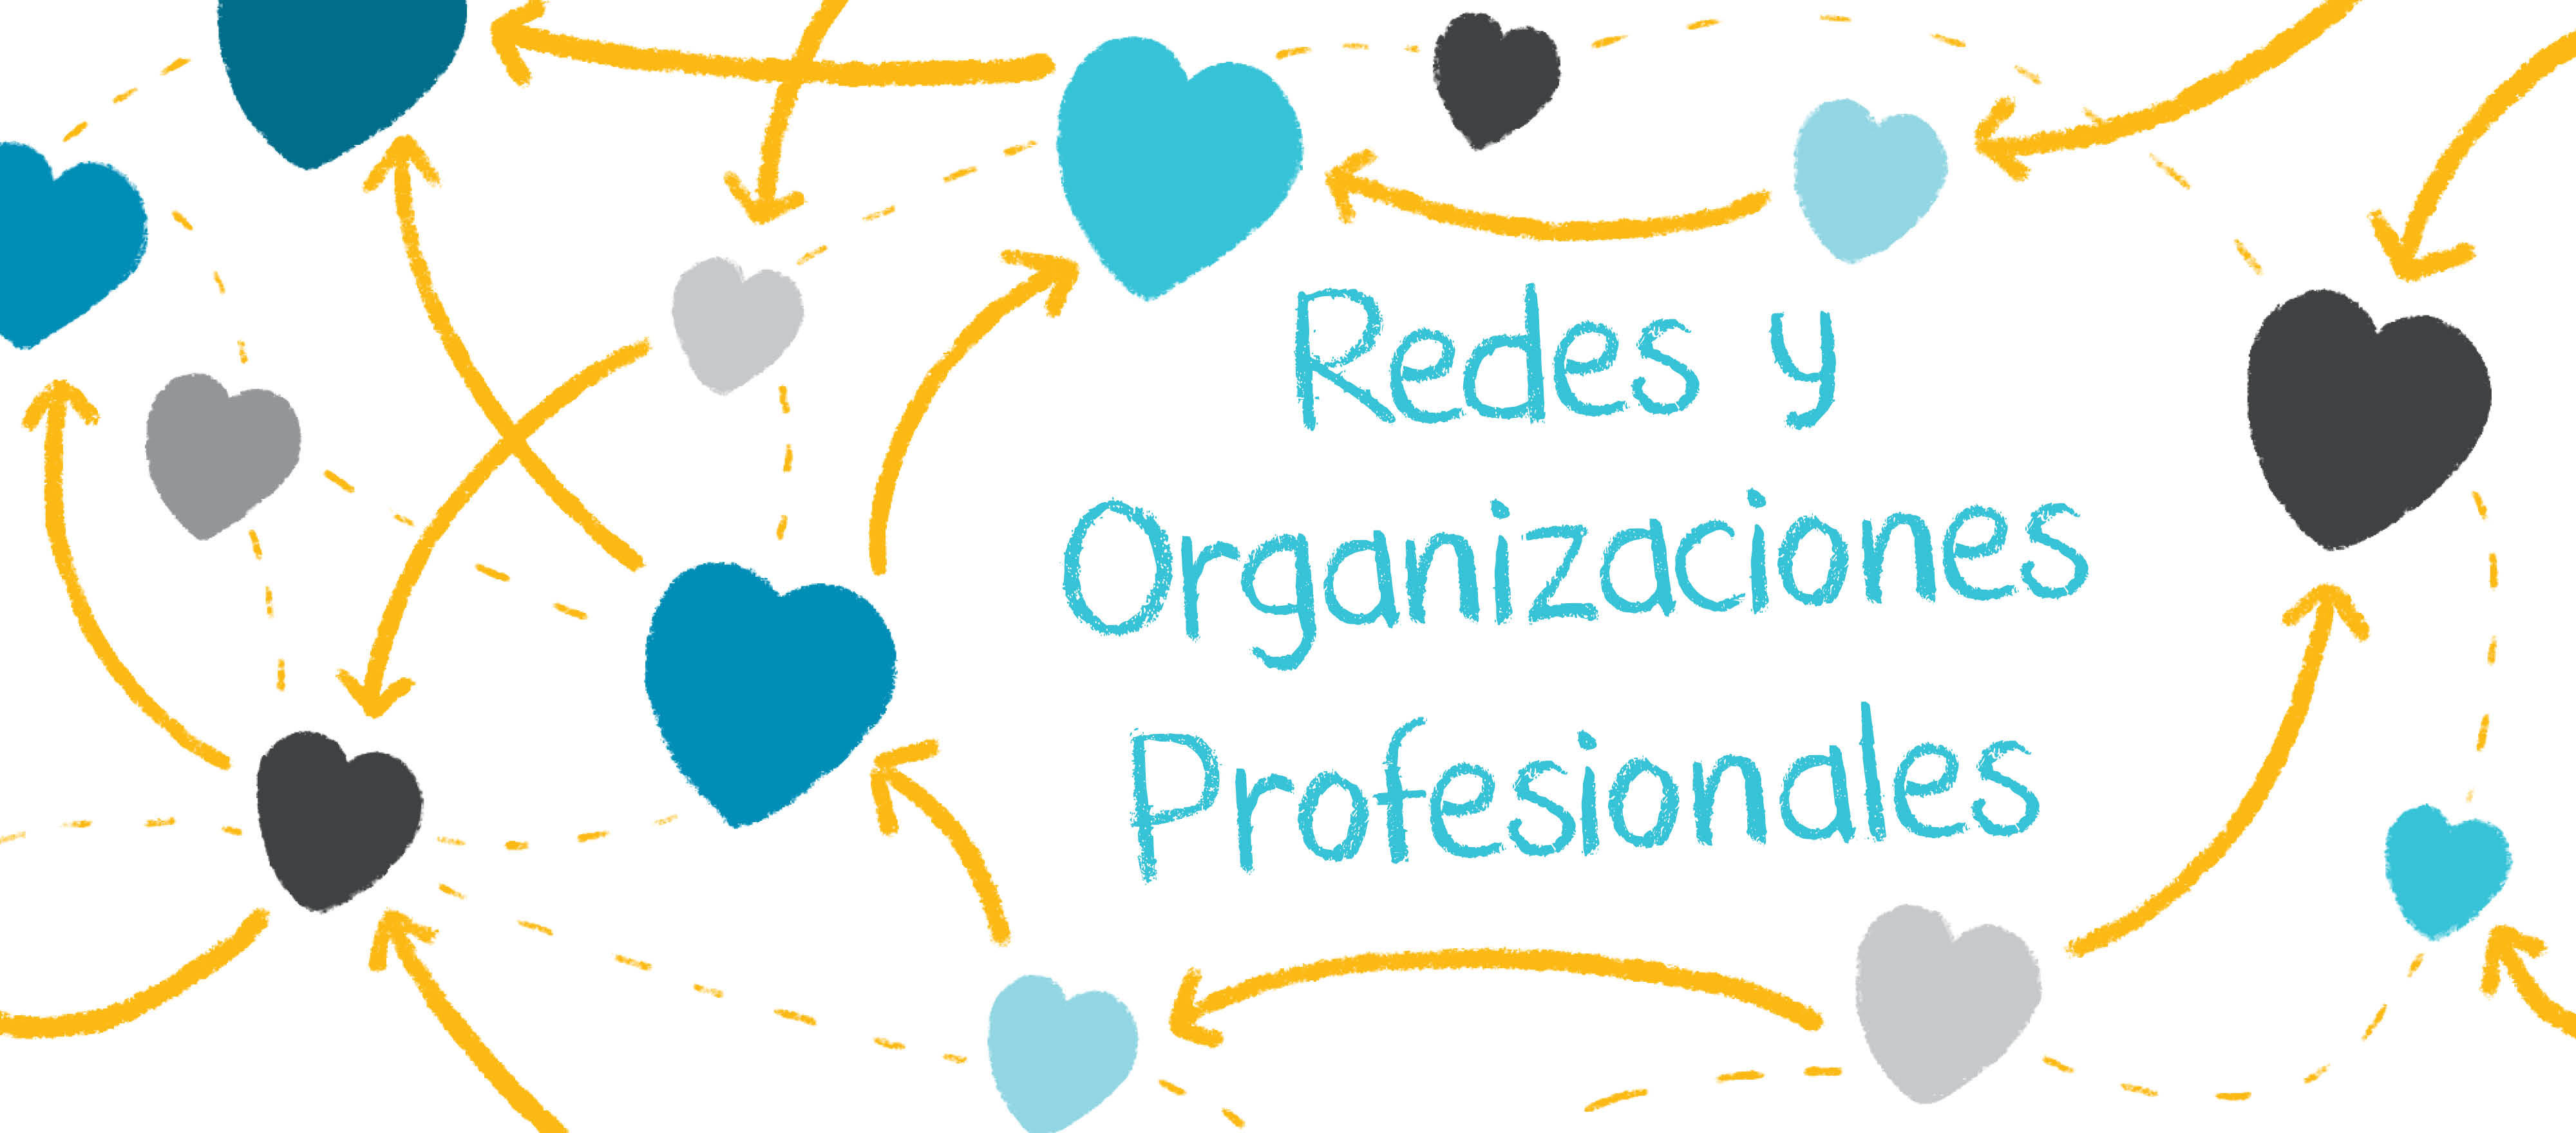 Professional Organizations & Networks